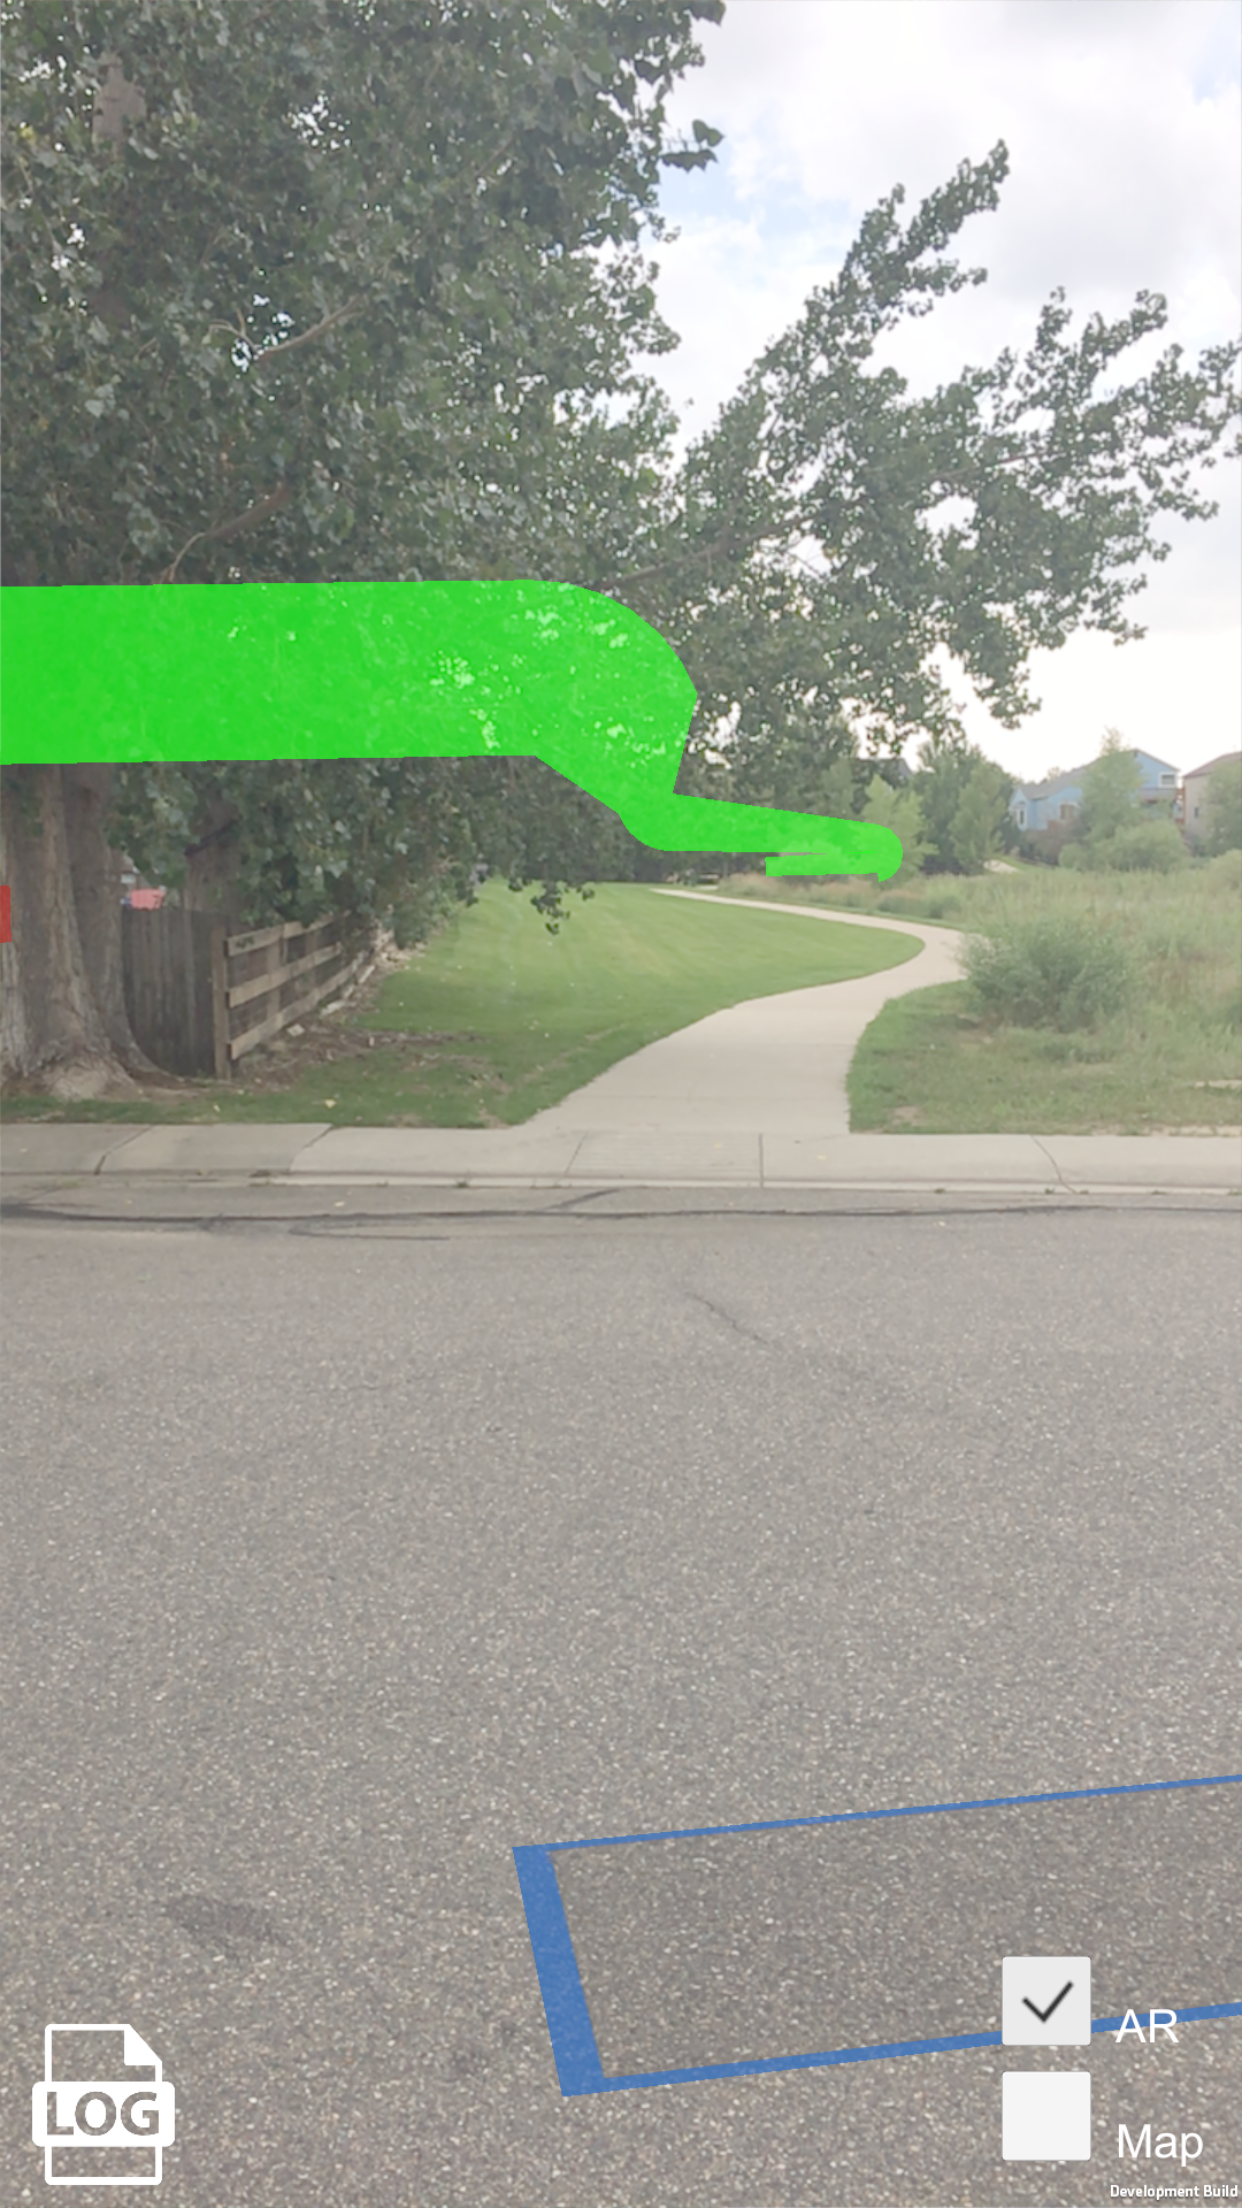 mapbox-arkit-unity:A place to create/learn with Unity